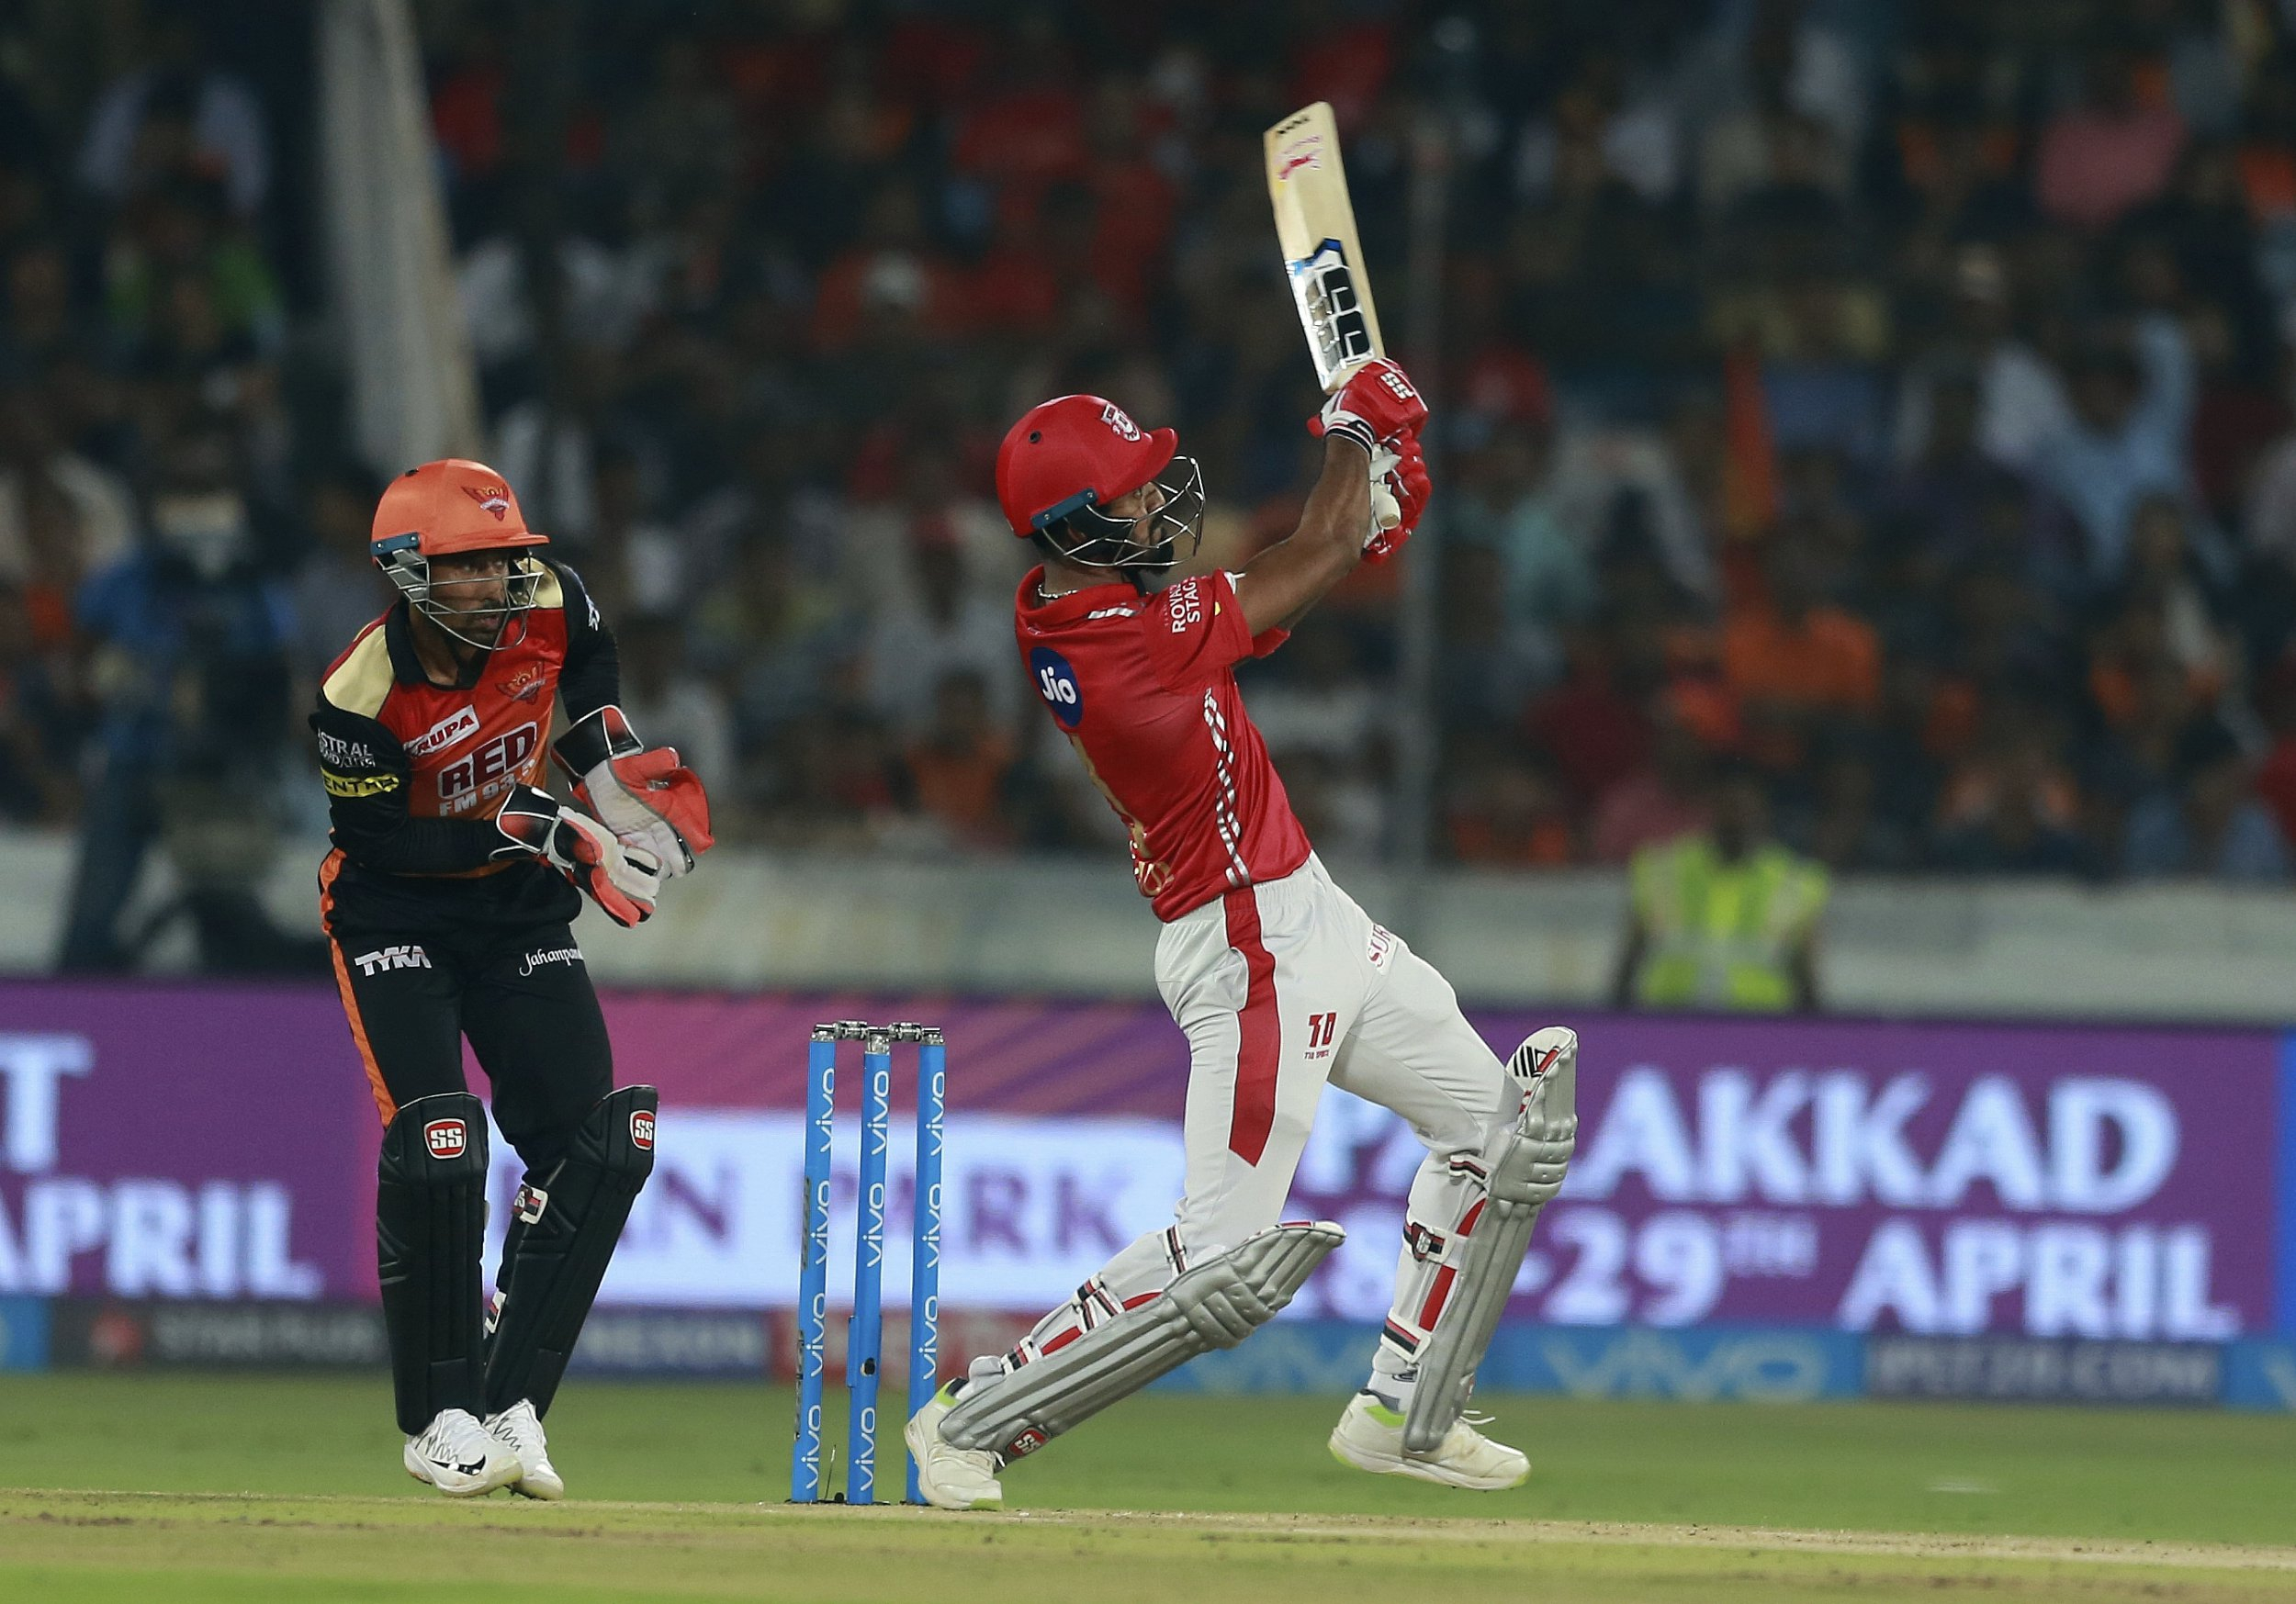 Chennai Super Kings v Kings XI Punjab IPL betting preview: KL Rahul and Andrew Tye are worthy favourites